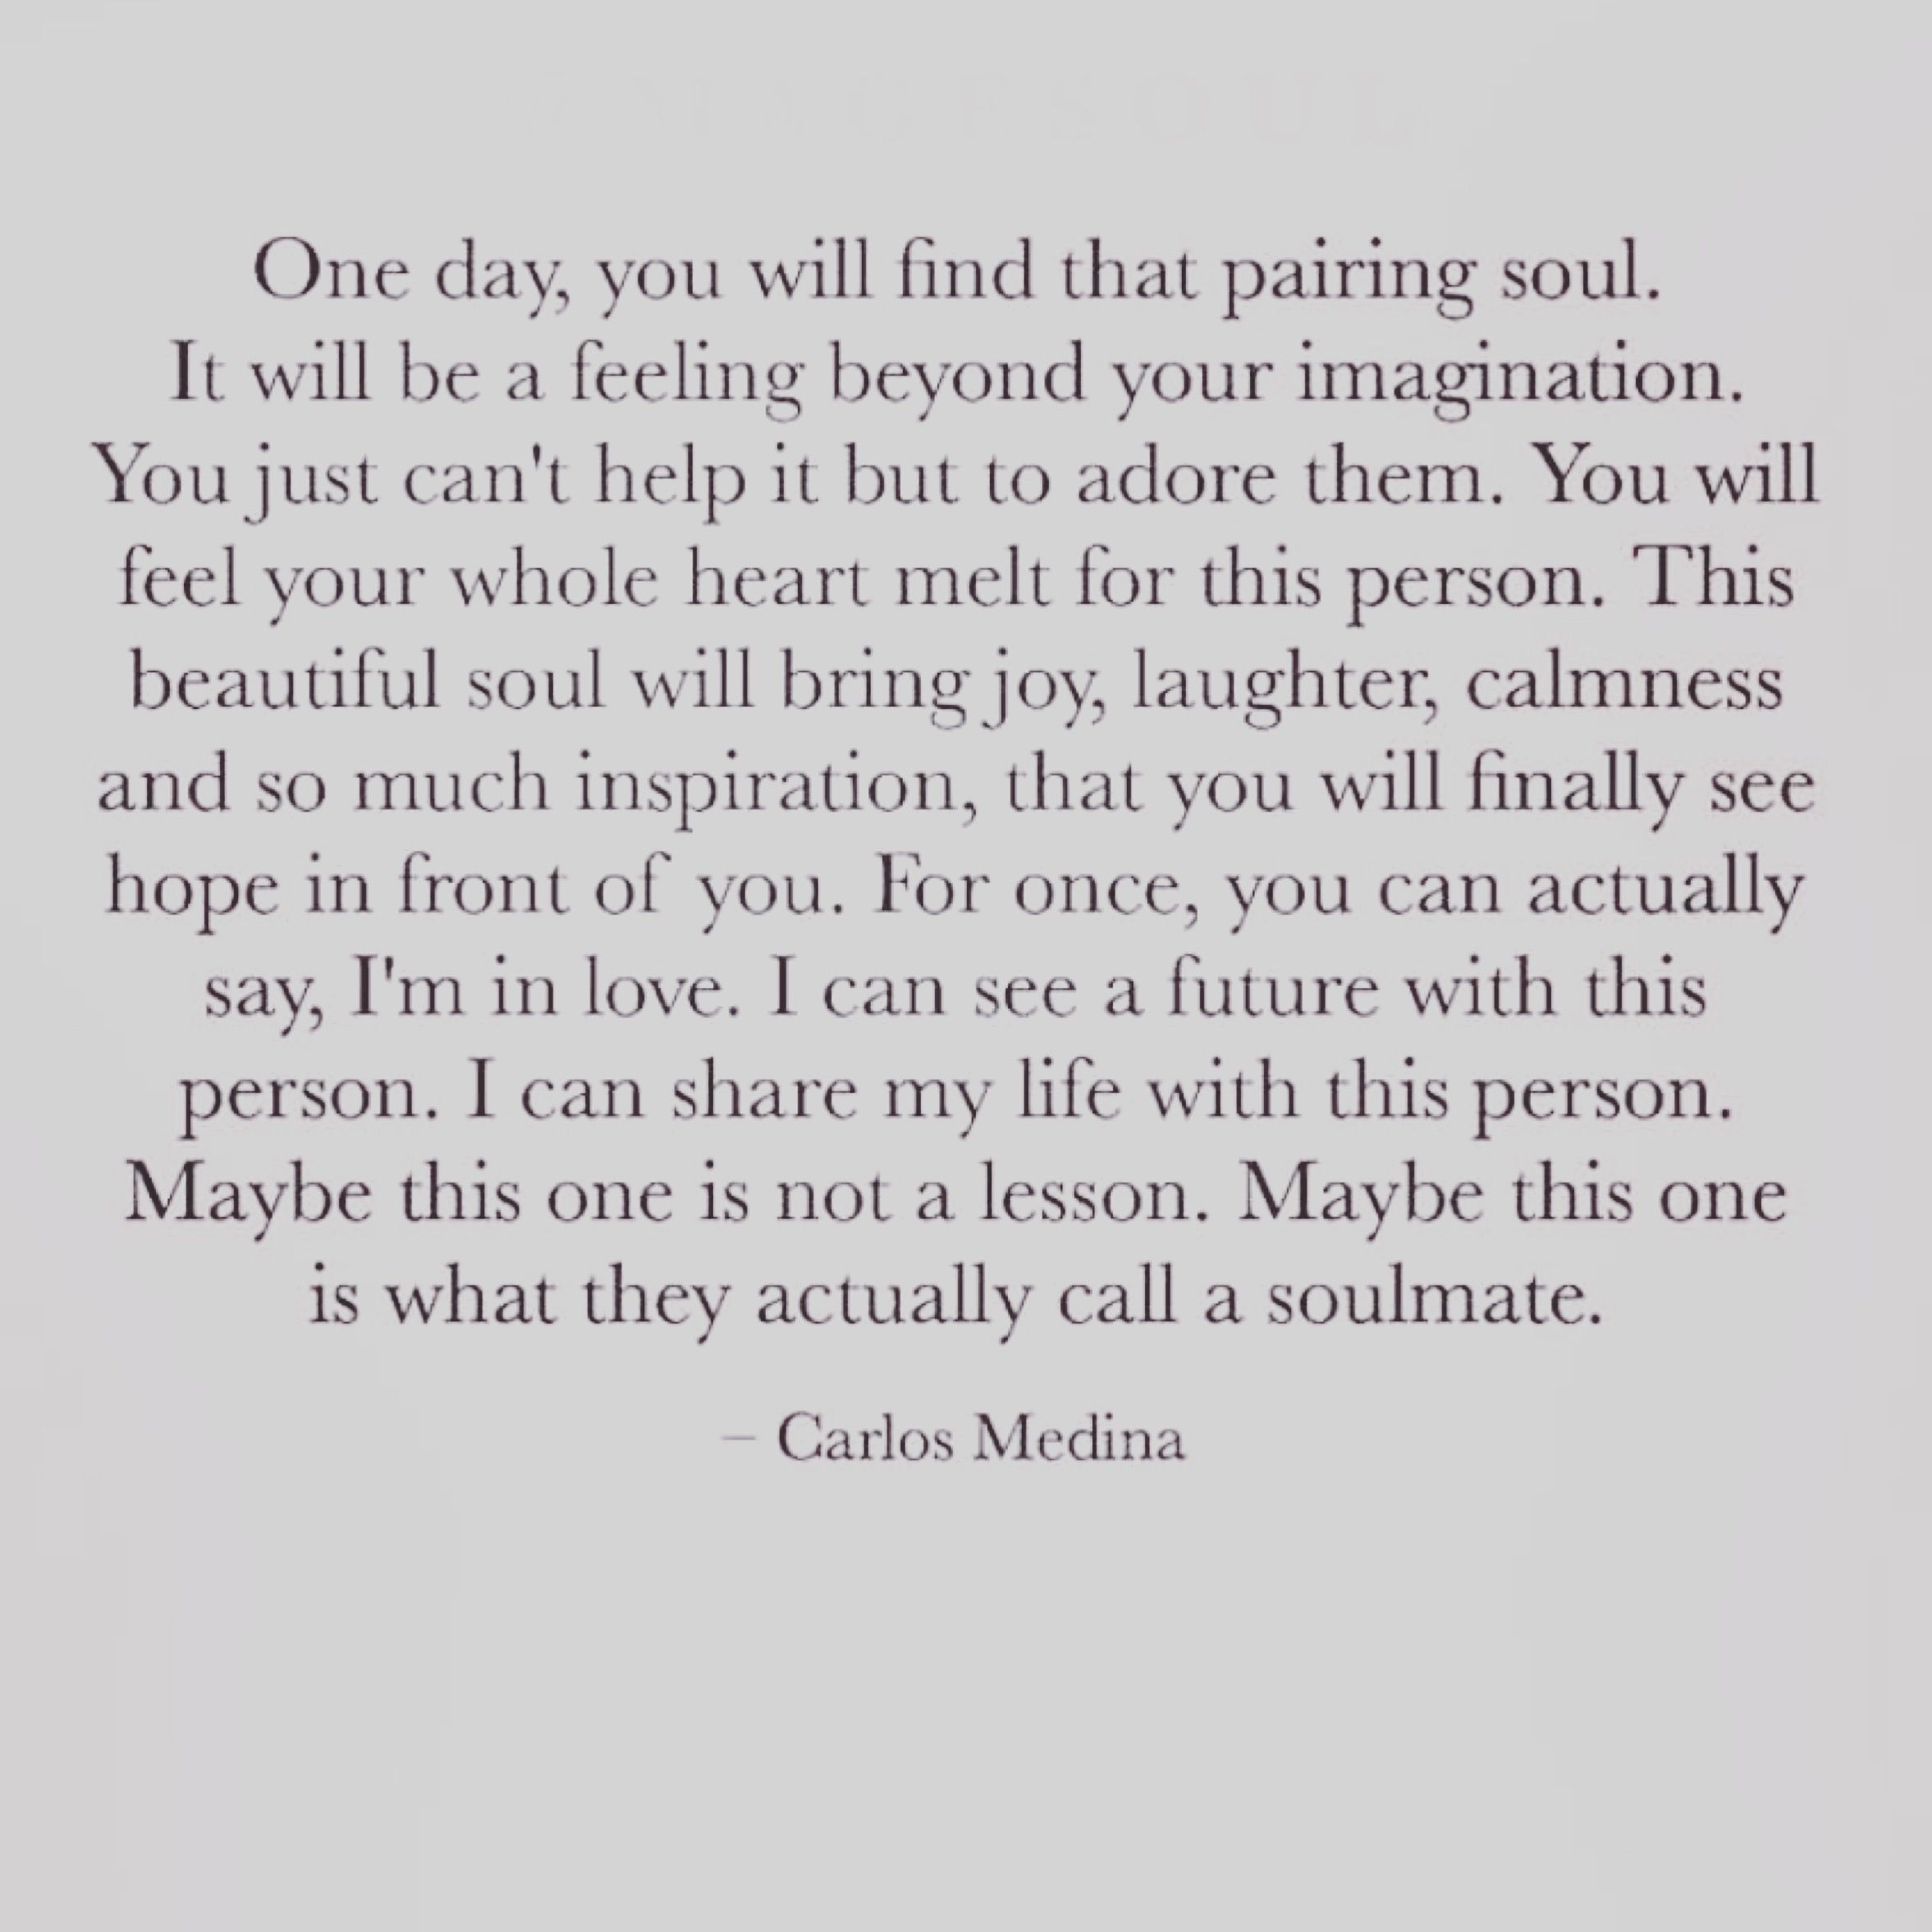 Love My Man Quotes Captivating Carlos Medina Quote #words #soulmate #soul  Me And You  Pinterest